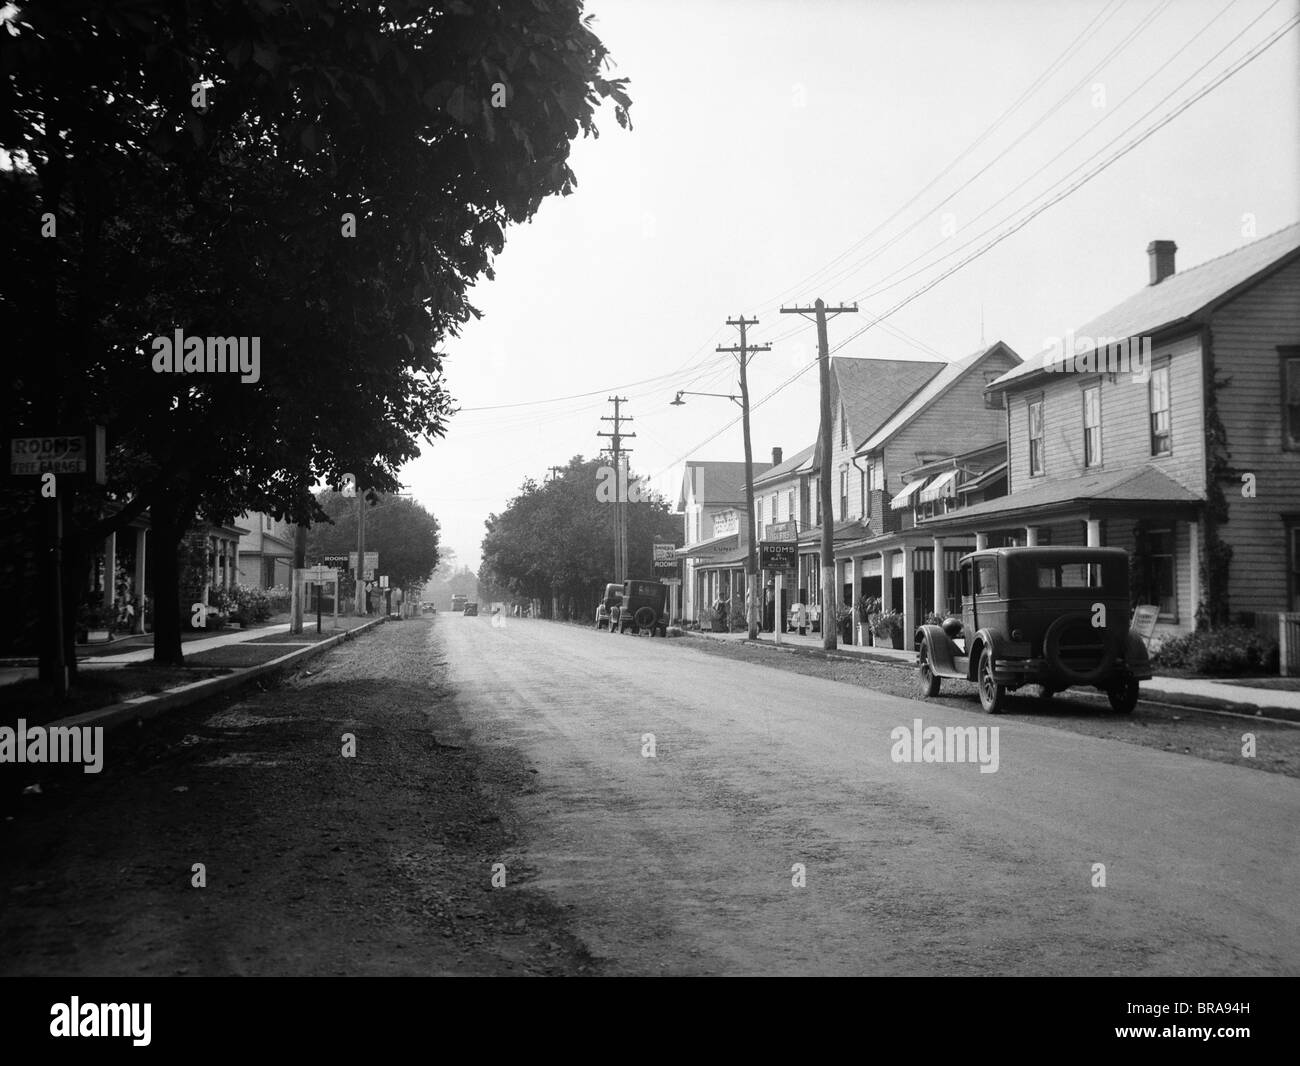 1930s JENNERSTOWN PENNSYLVANIA LOOKING DOWN THE MAIN STREET OF THIS SMALL TOWN - Stock Image